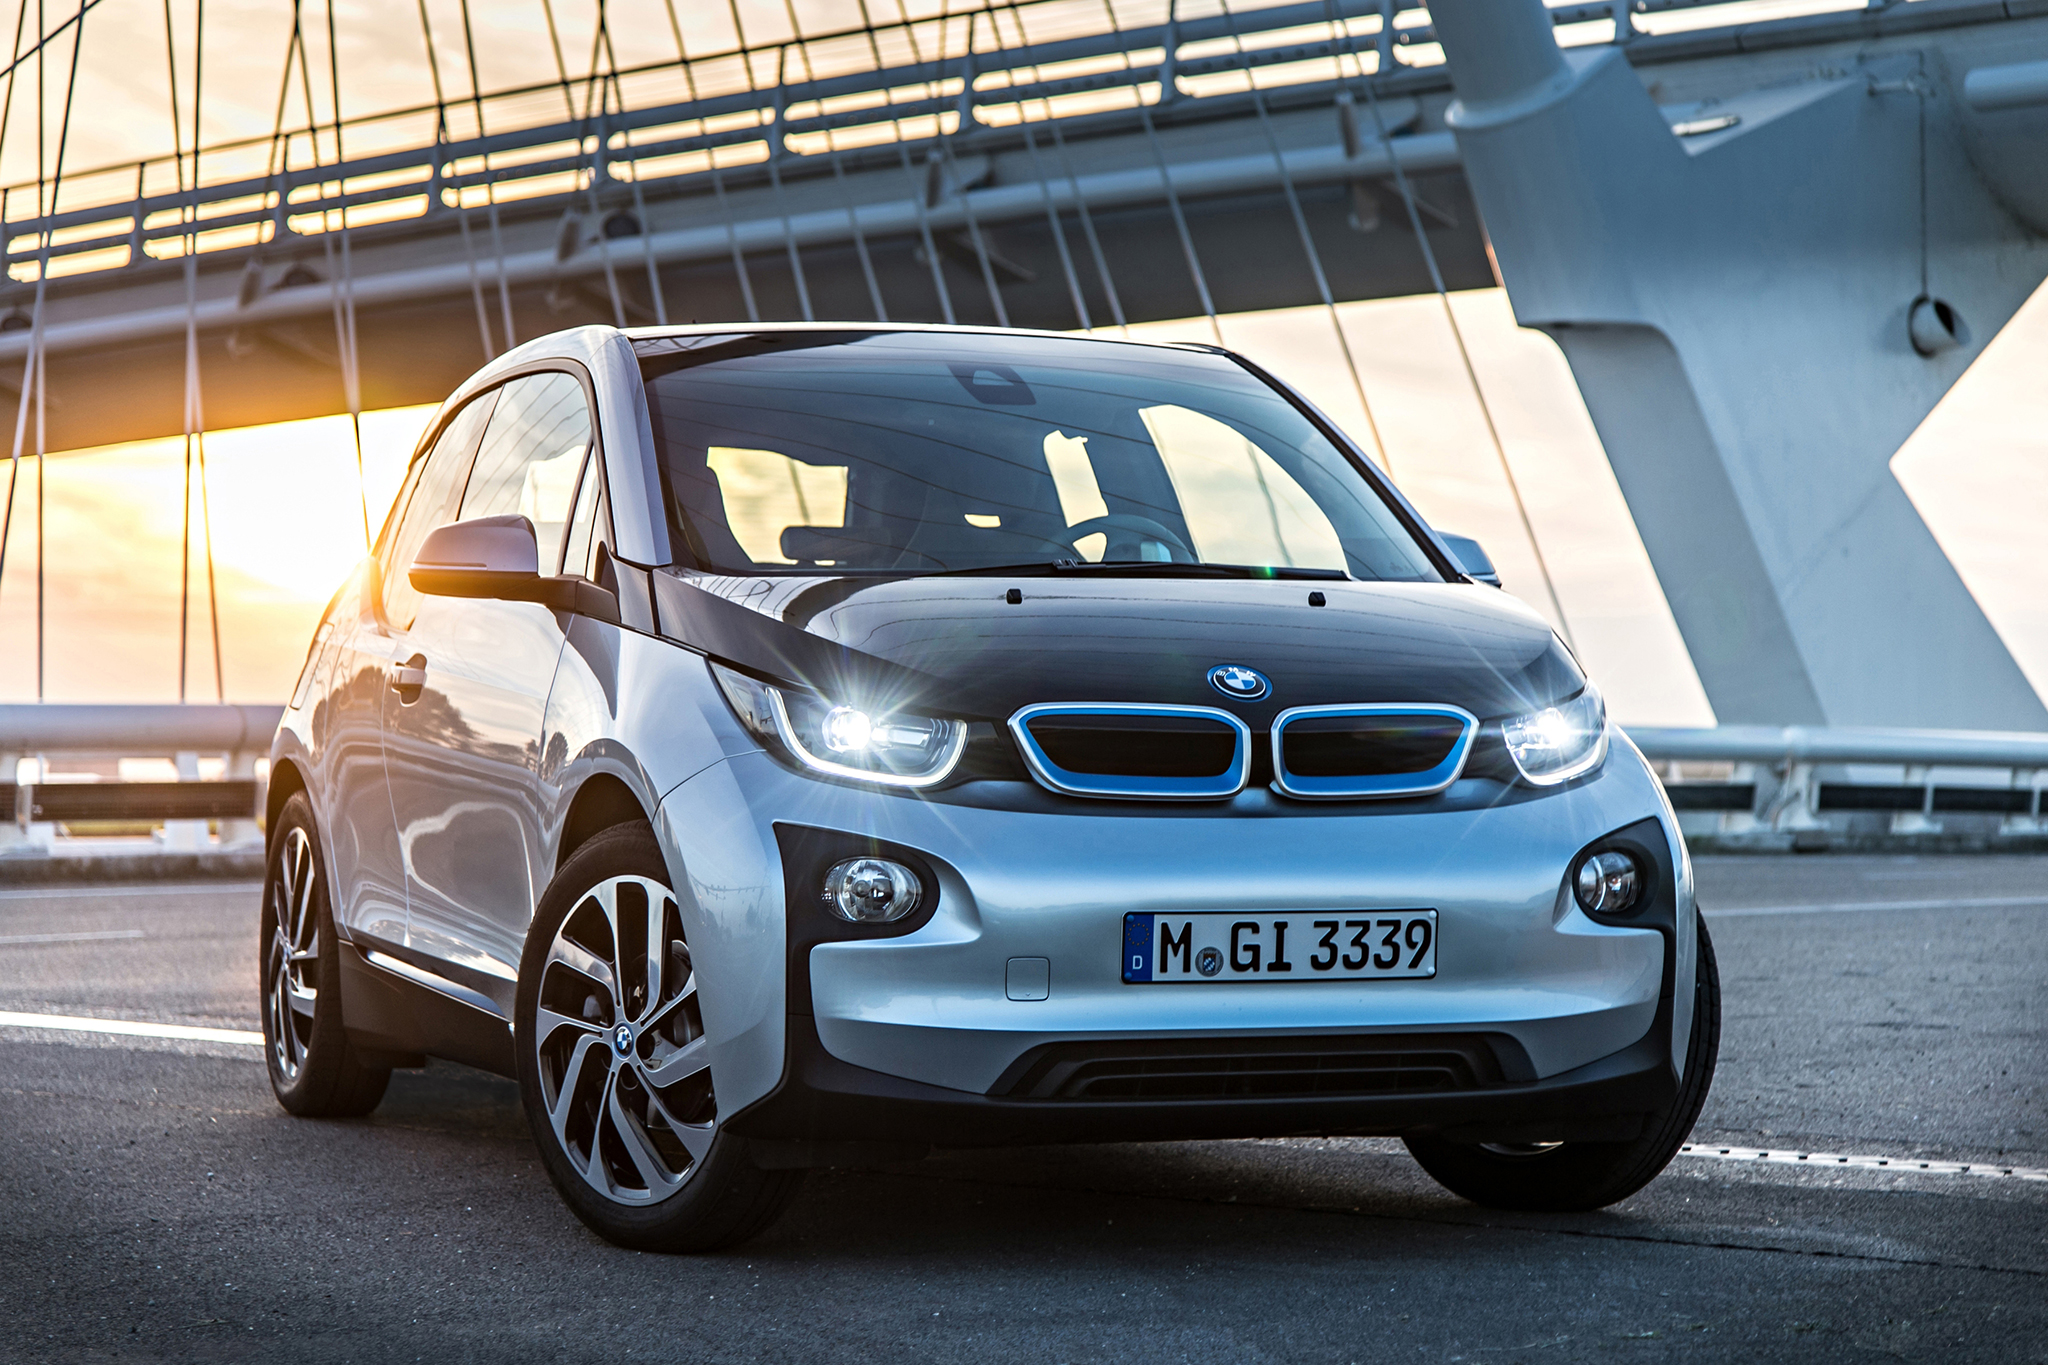 Driving the 2014 BMW i3 in the Real World